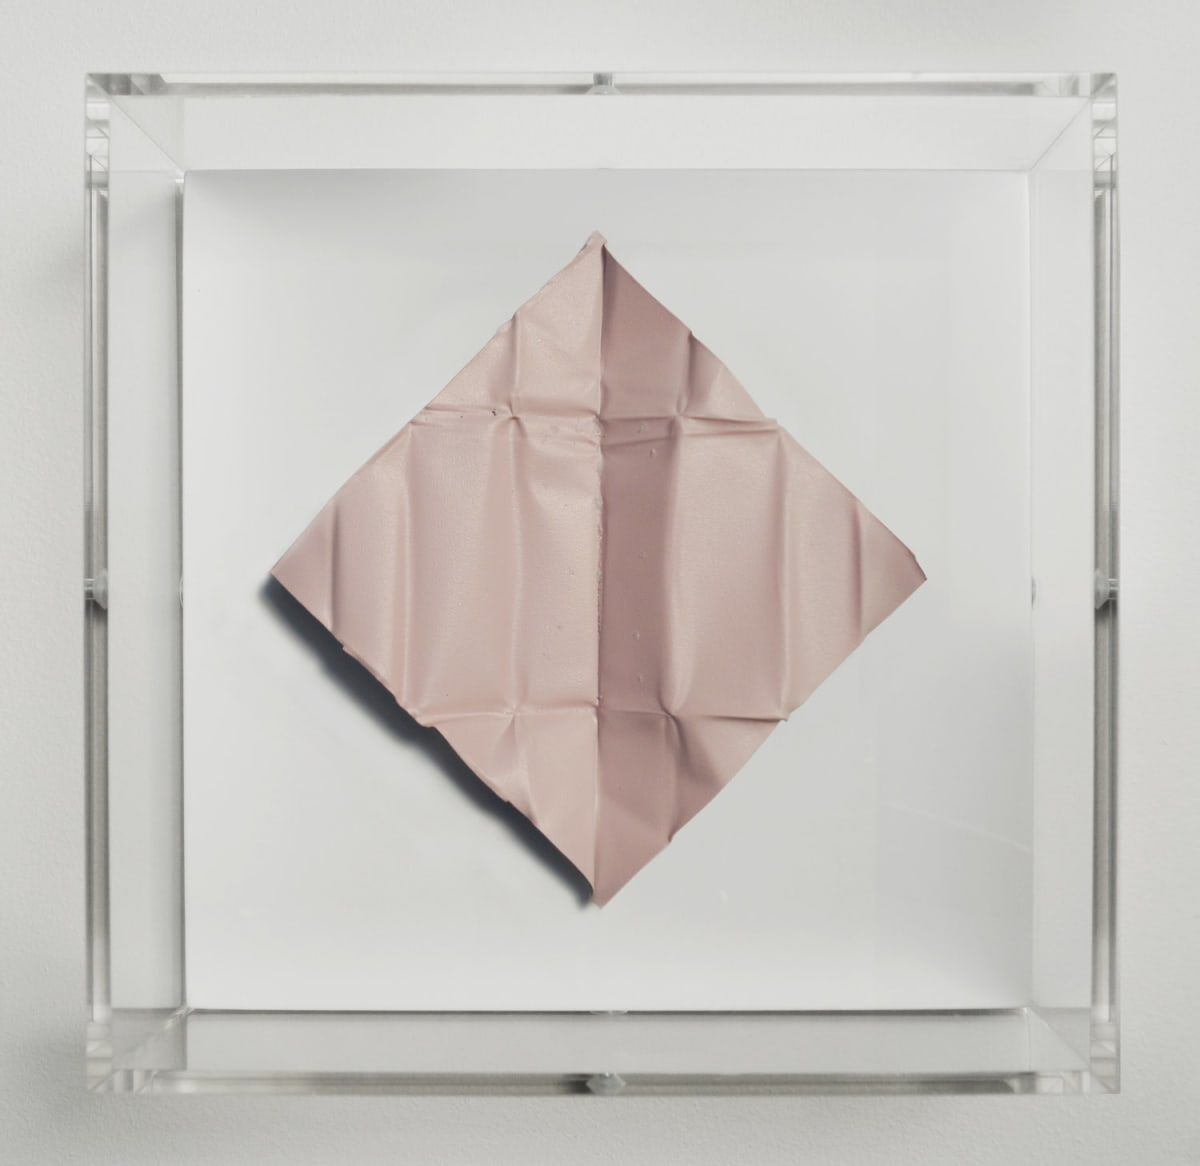 Mat Collishaw The Release - Grapefruit Light, 2018 Diamond dust, folded aluminium, wood, acrylic, paint FRAMED 18.5 x 18.5 x 6.5 cm Edition of 10 Signed and numbered